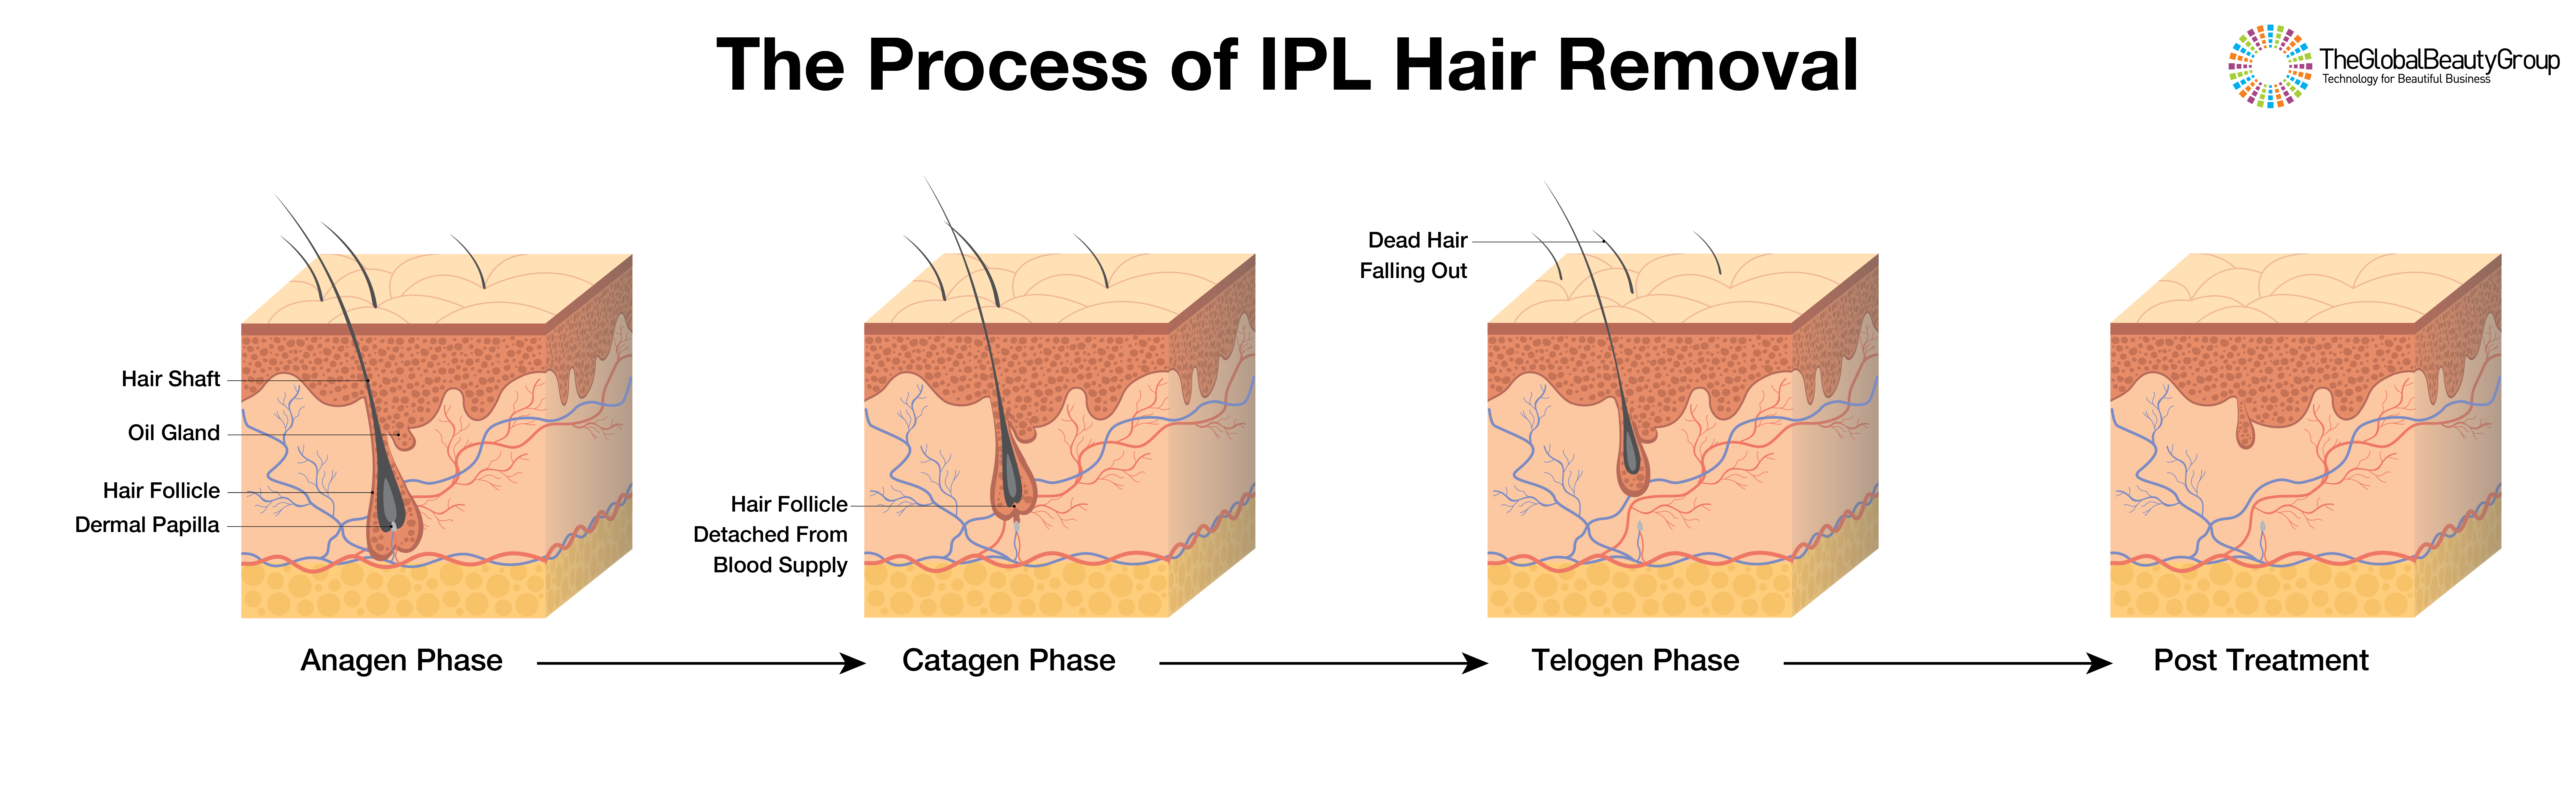 The-process-of-IPL-hair-removal-